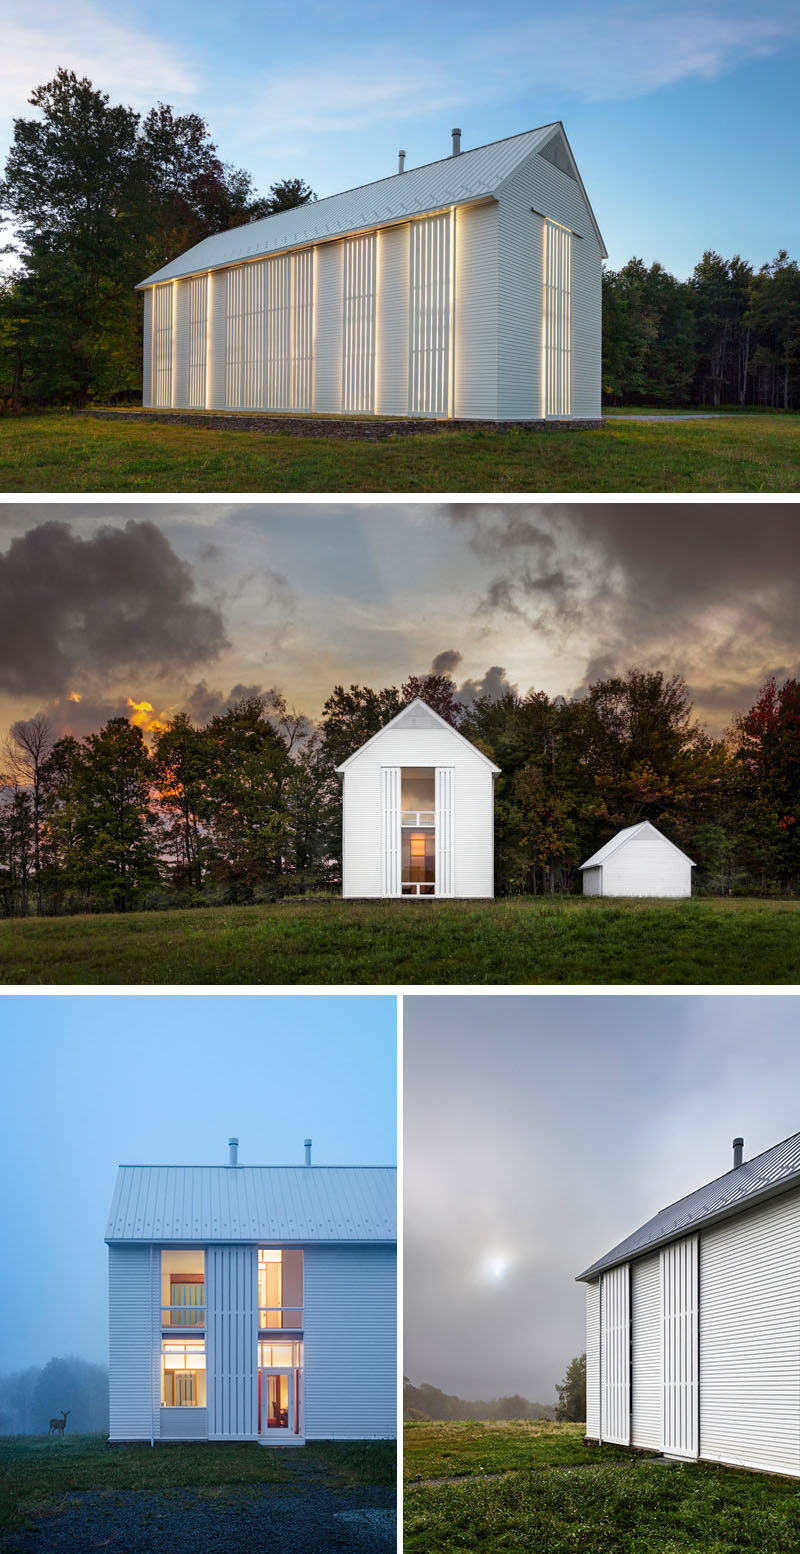 Cutler Anderson Architects have completed a modern farmhouse for a large family on a 93-acre farm in northeastern Pennsylvania, that was designed to fit in with the surrounding farming community. #Farmhouse #ModernArchitecture